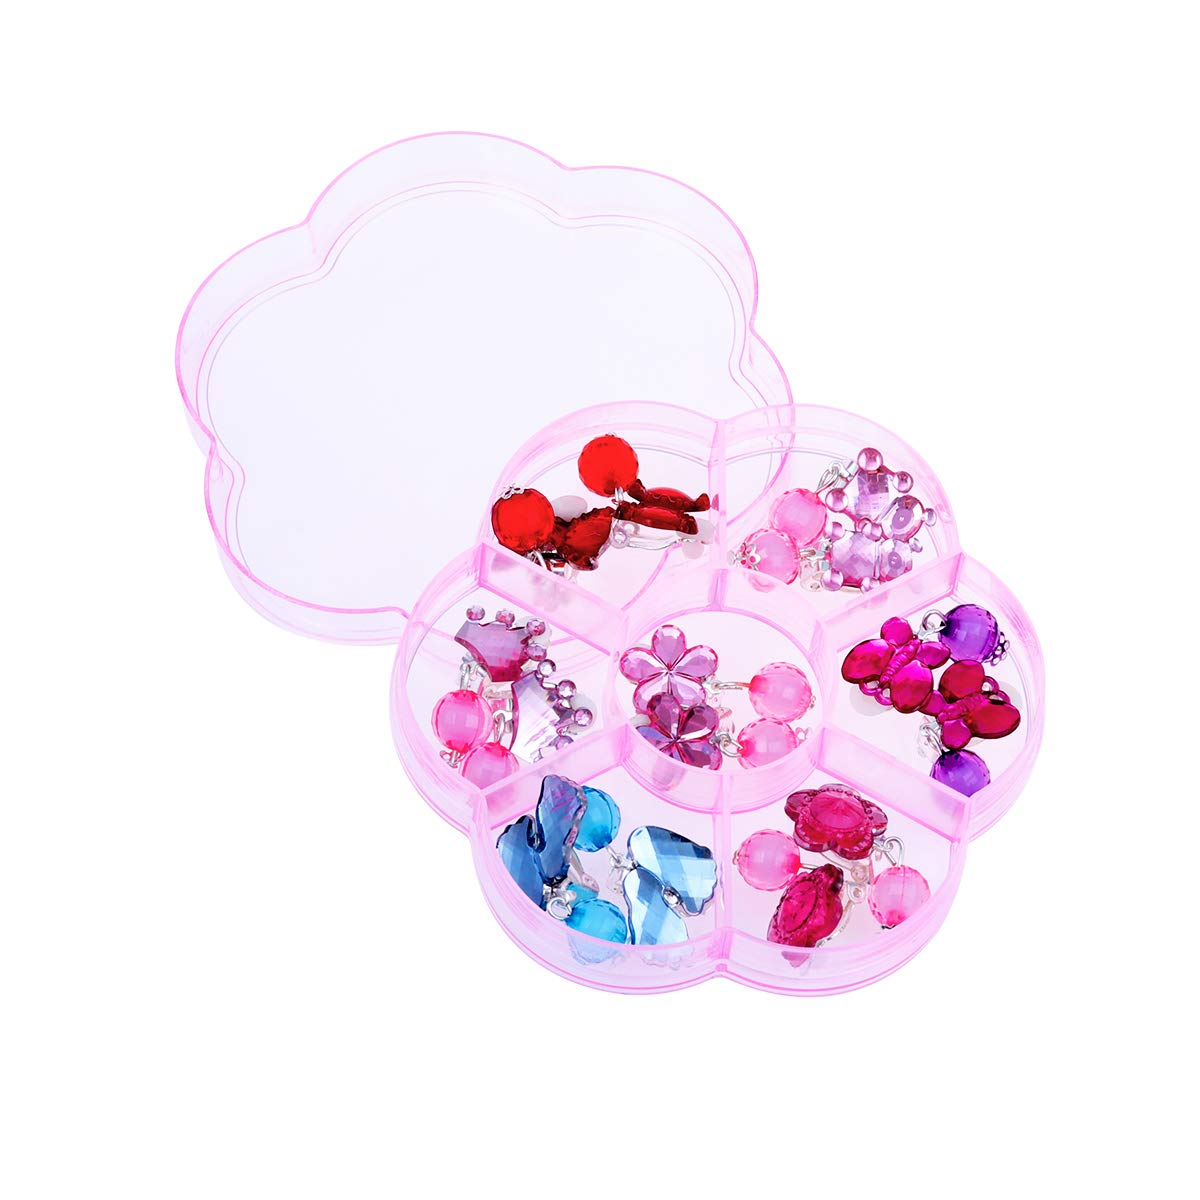 Toyvian 7 Pairs of Young Girls Earrings Box Set Clip-on Jewelry Kids Accessories Birthday Gift